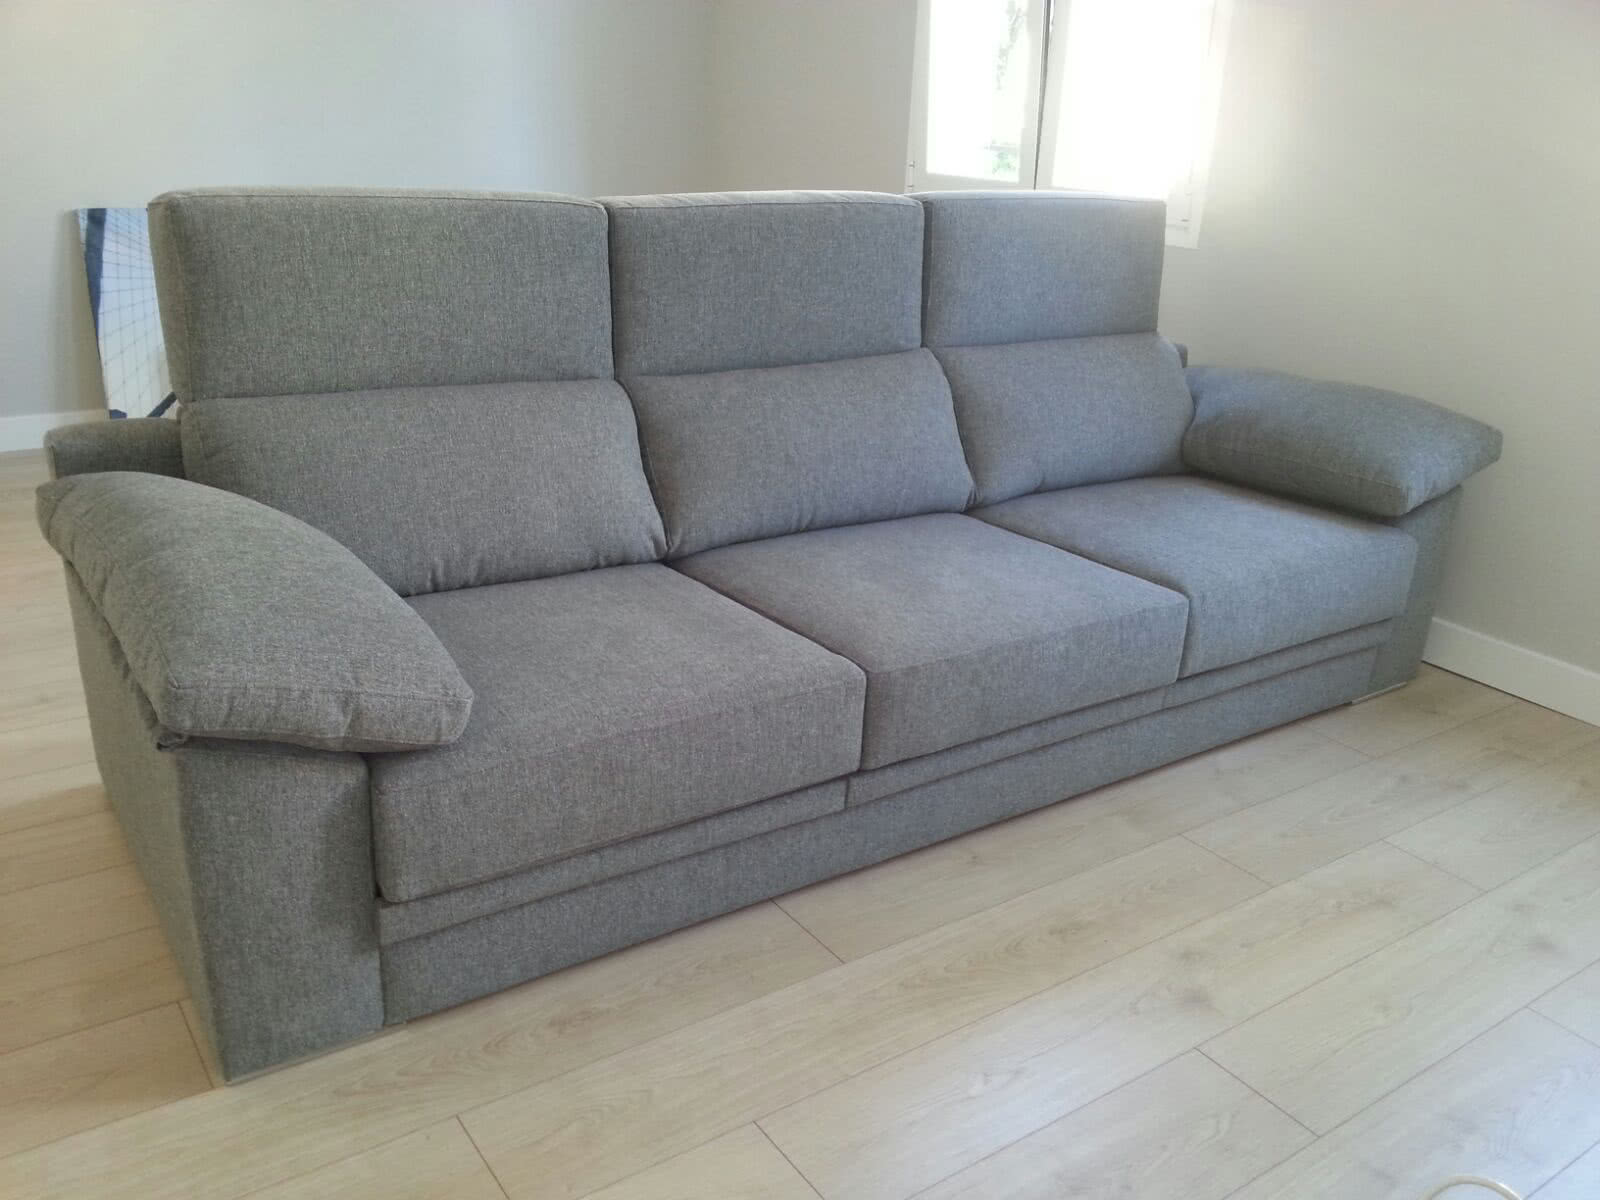 Sof modelo reclinable brazo almohadilla masabo for Sofas baratos madrid outlet